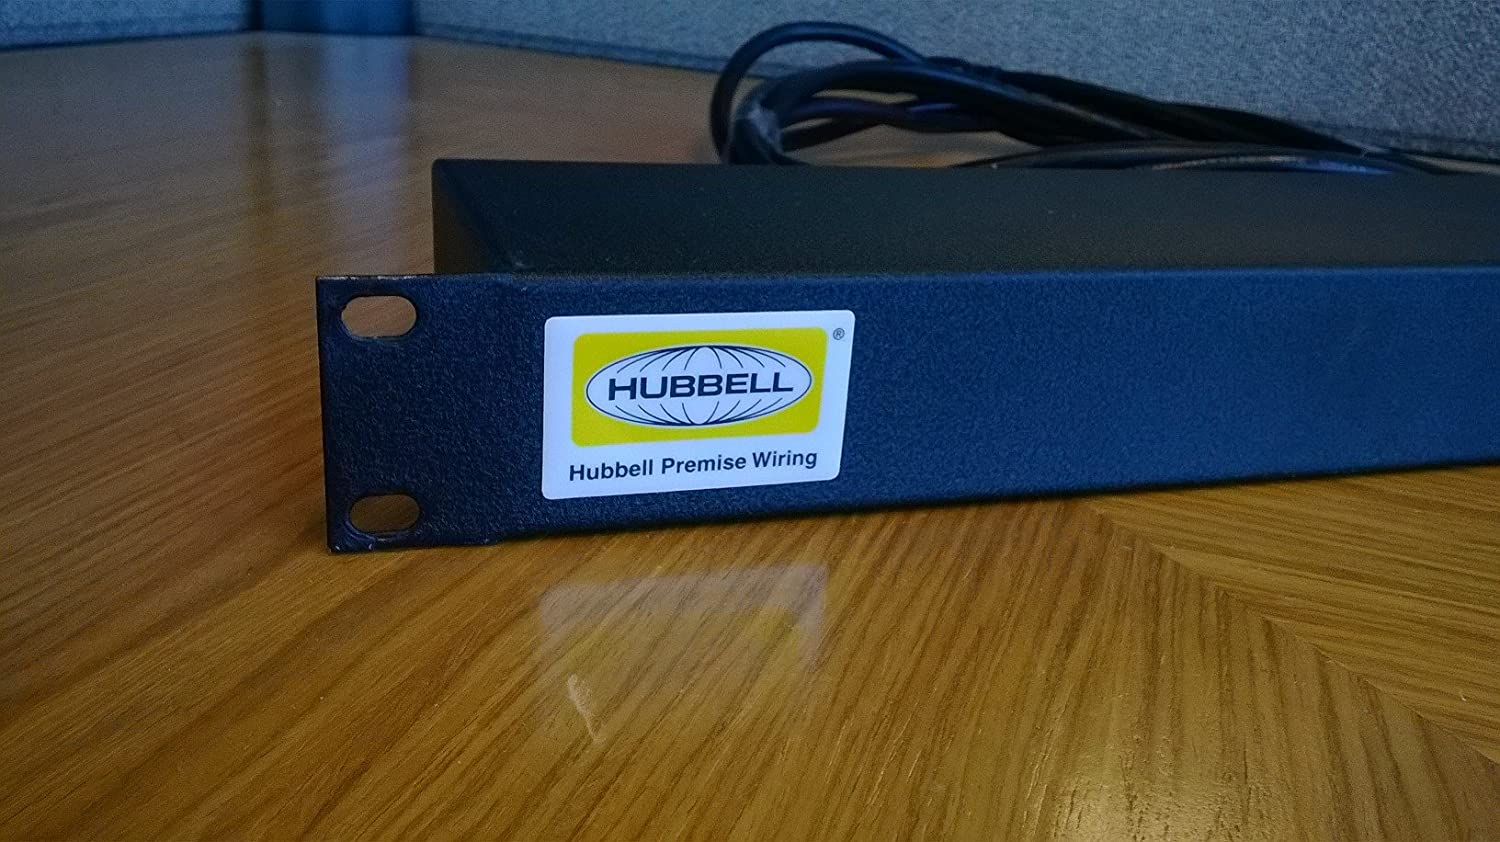 Hubbell Premise Wiring Mccpss19 Rackpower Surge15amp Camera Photo